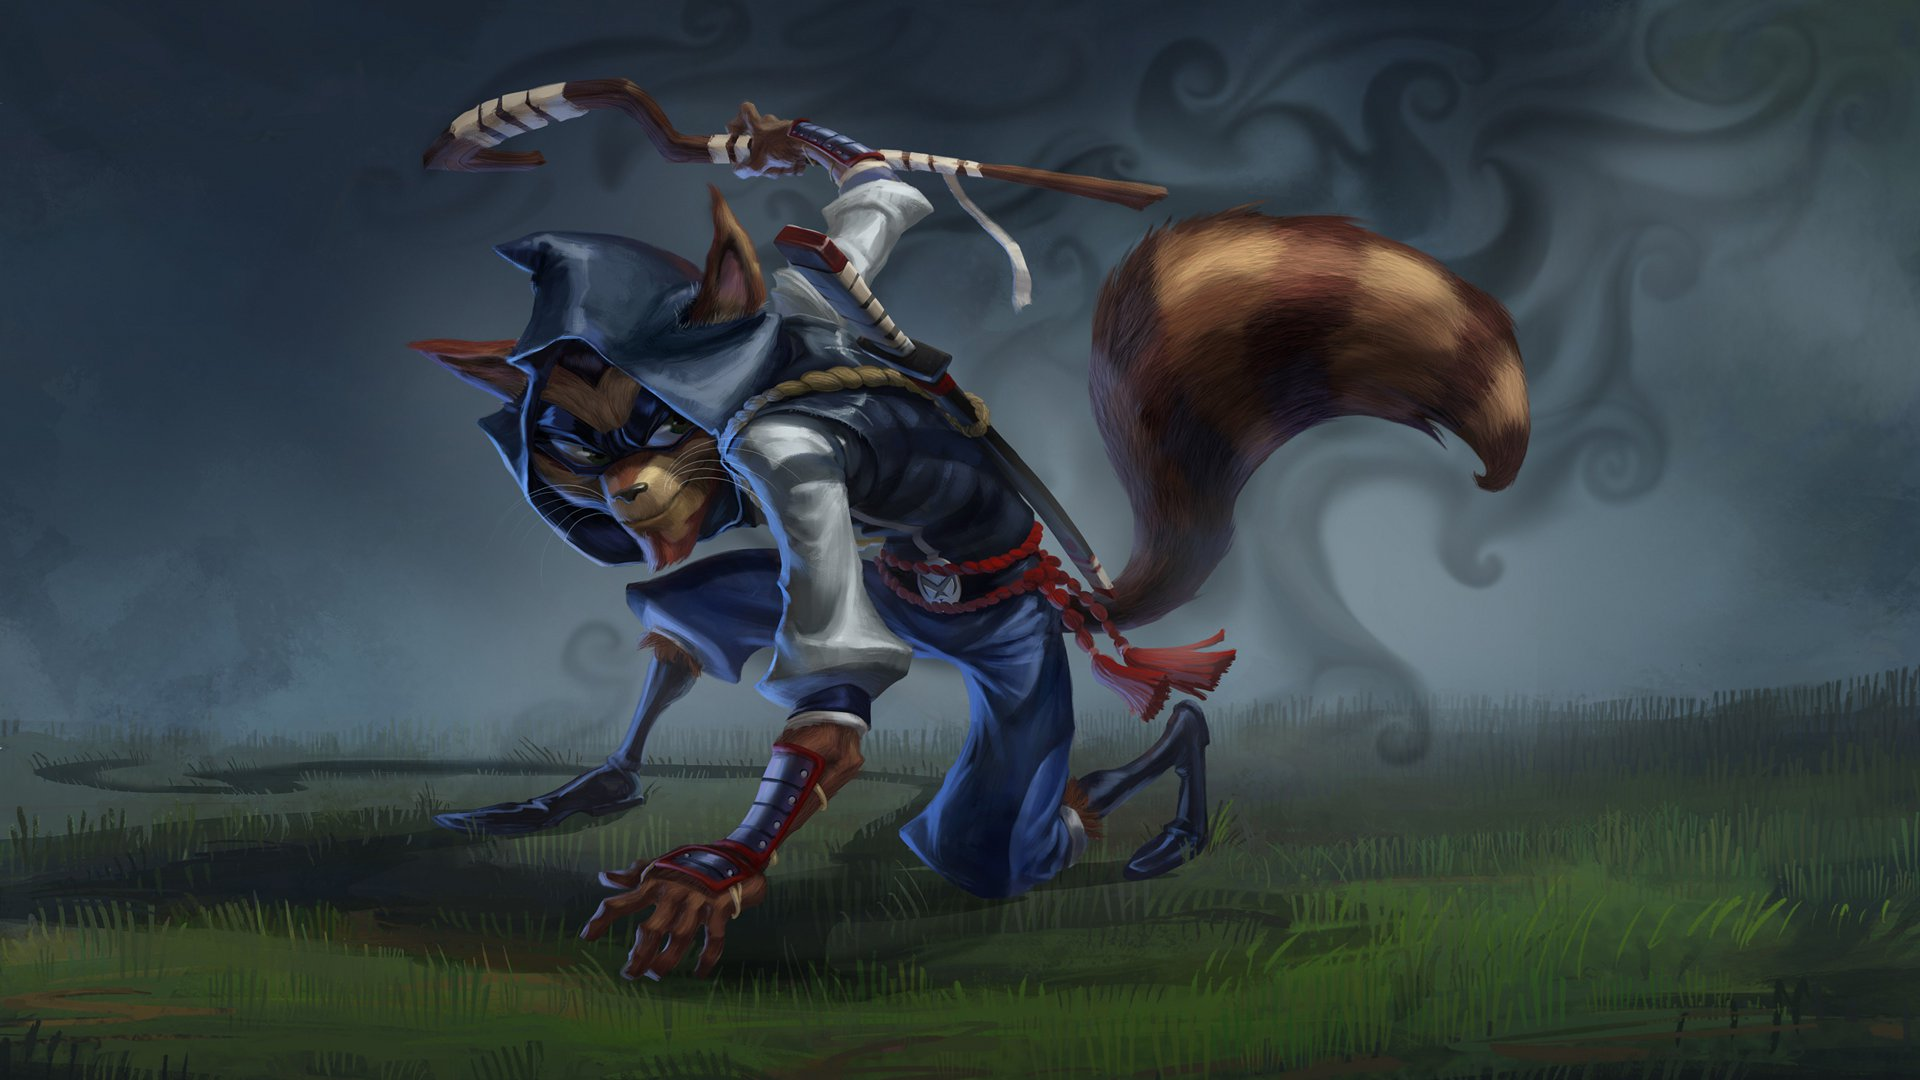 Sly Cooper HD Wallpapers Backgrounds 1920x1080